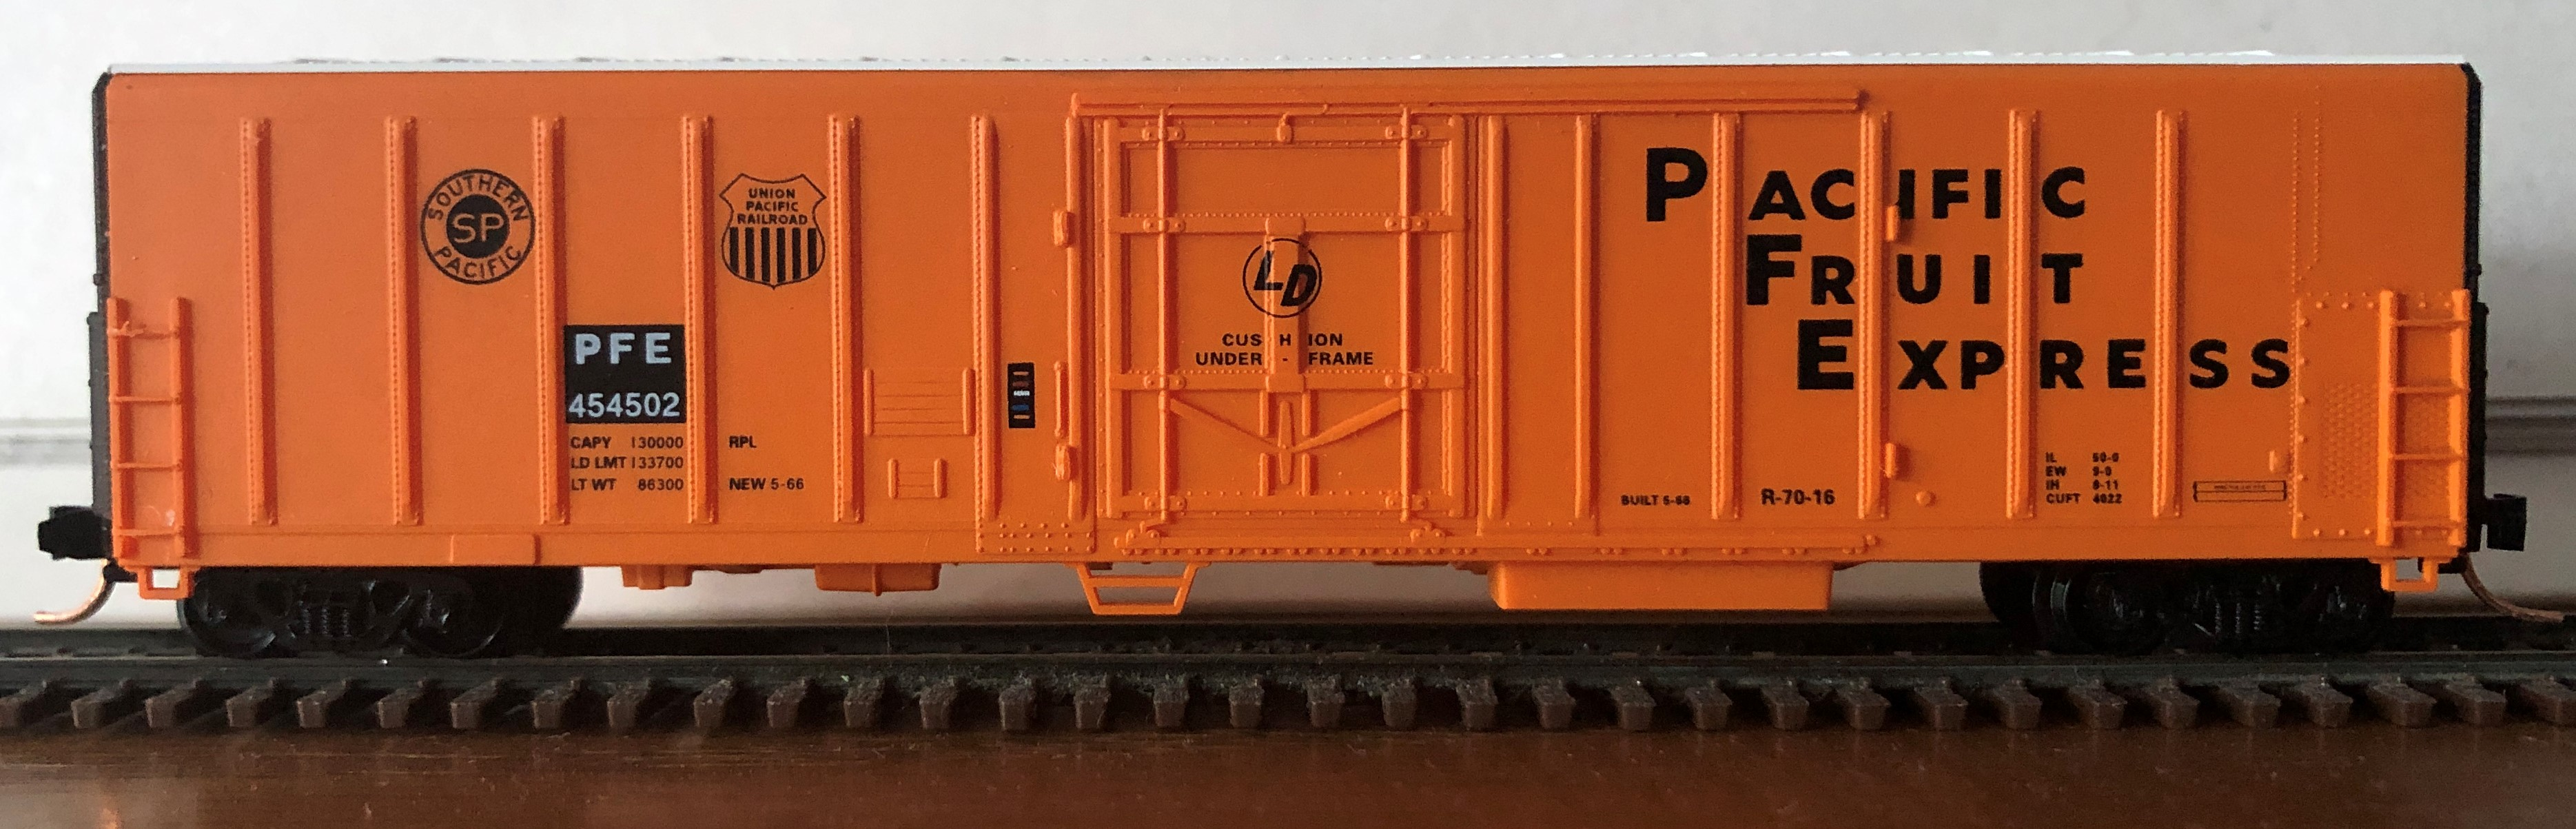 N Scale - Red Caboose - RM-18651-1 - Reefer, 57 Foot, Mechanical, PC&F R-70-16 - Pacific Fruit Express - 454502